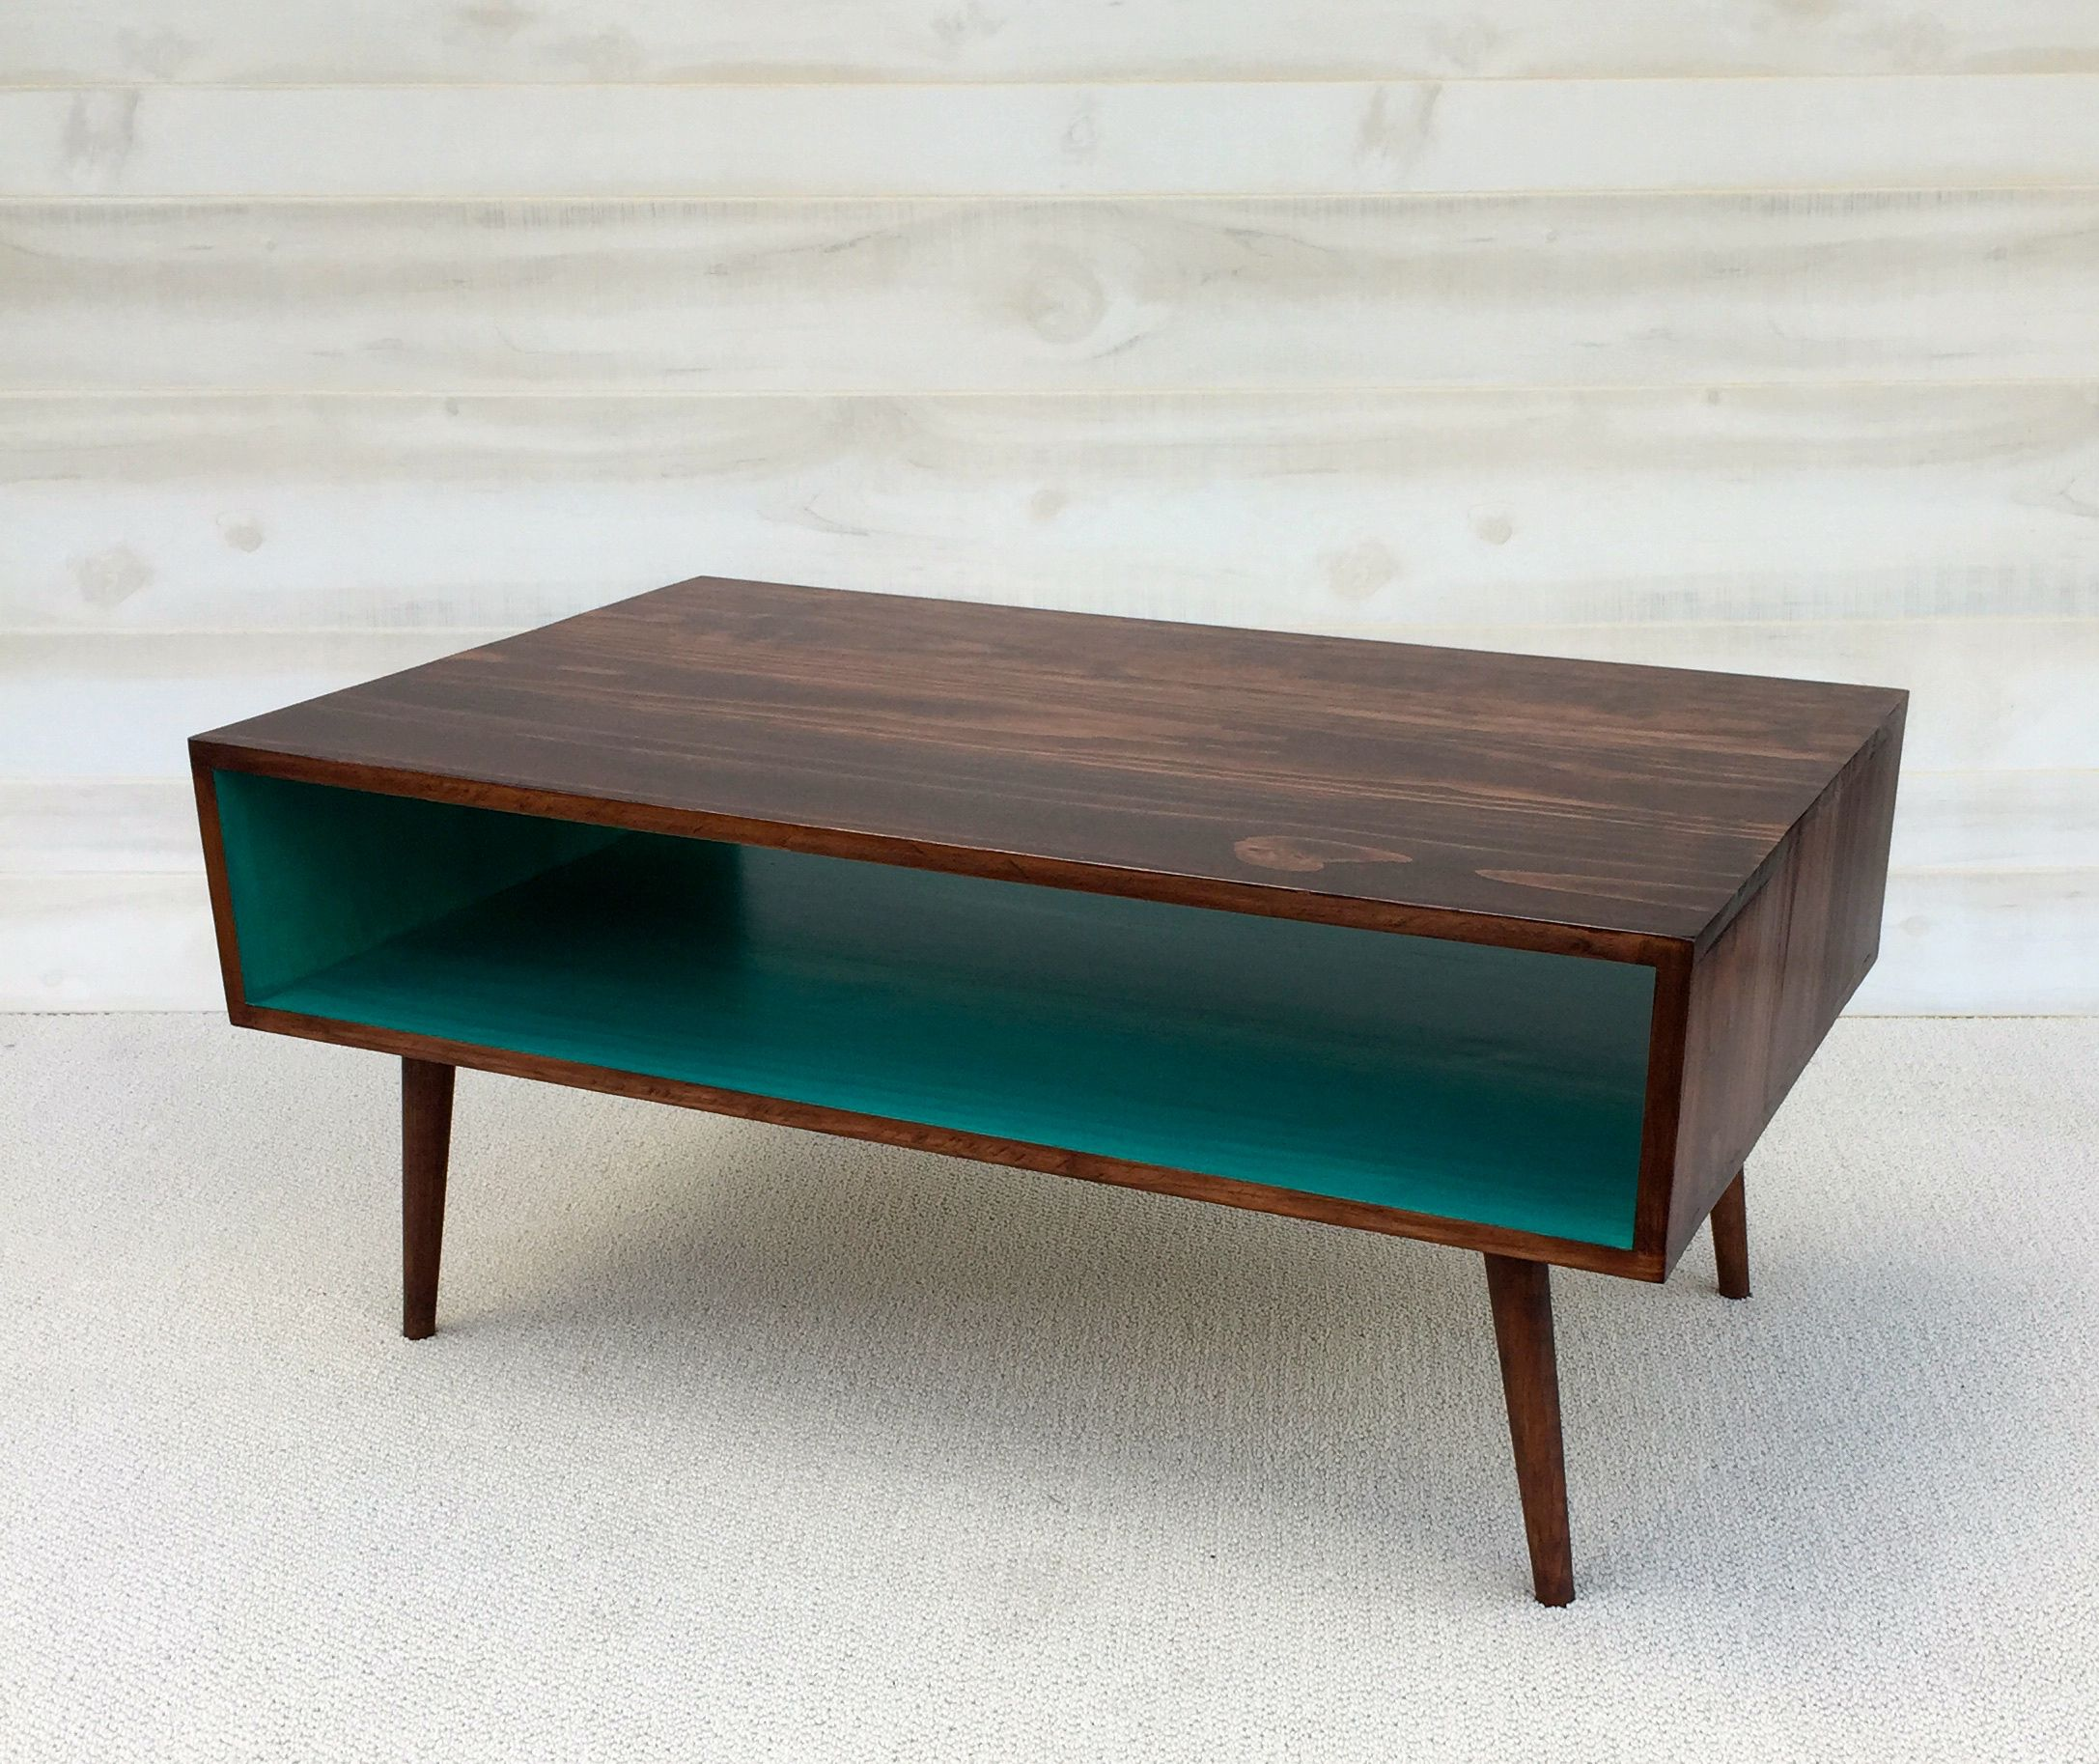 A Hand Made The Slim Mid Century Modern Coffee Table